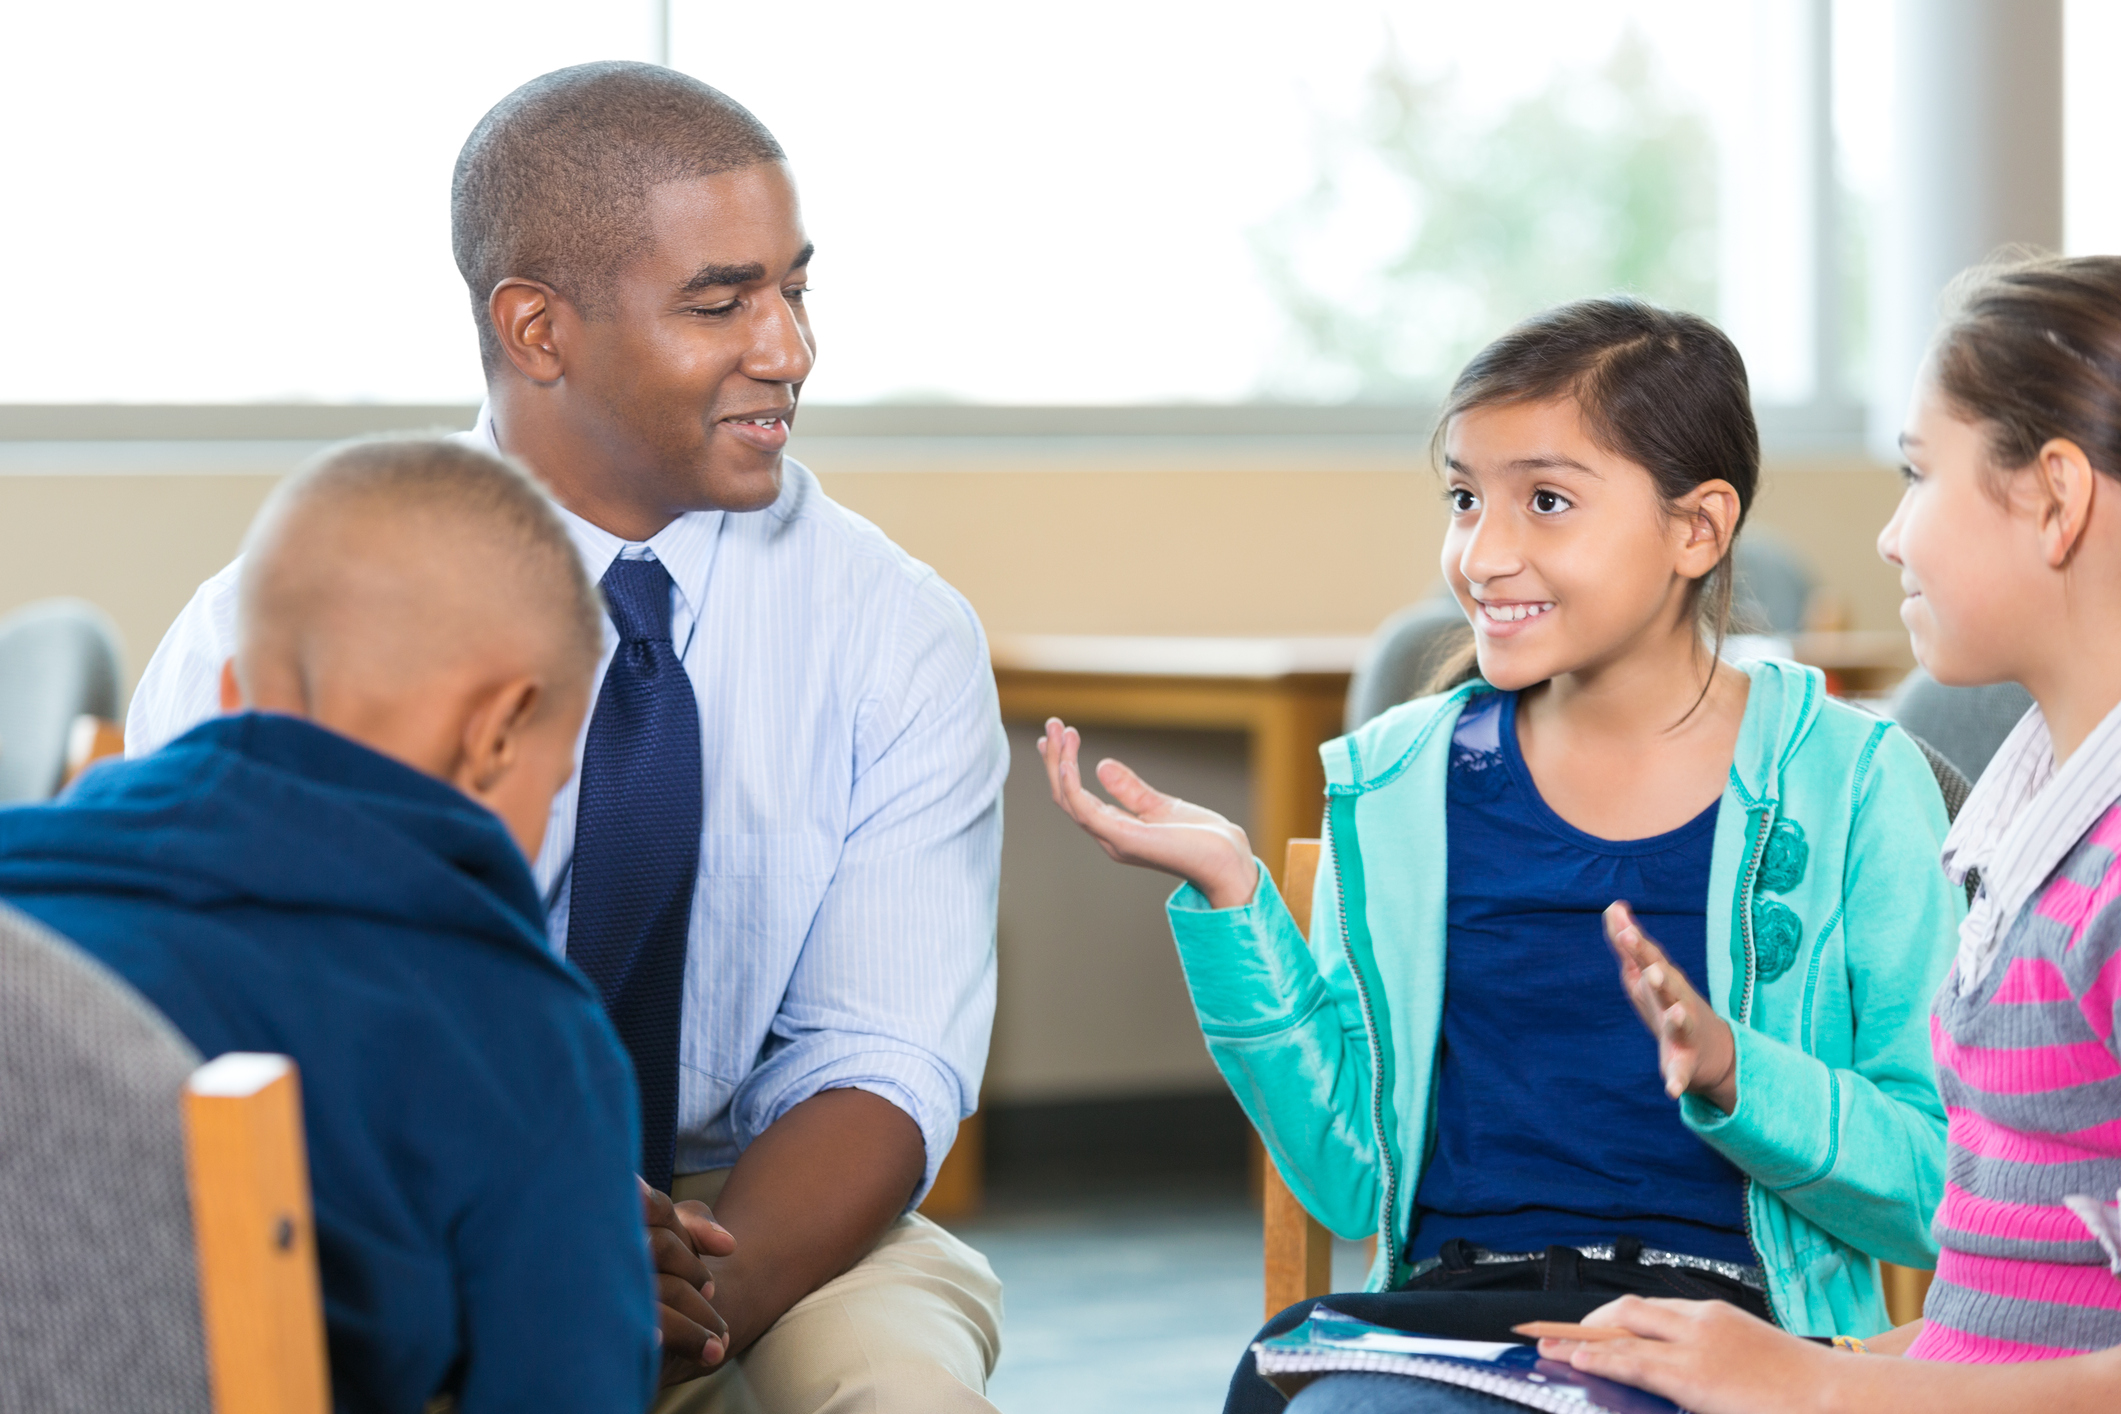 Elementary-age-kids-talking-to-counselor-during-group-therapy-session-501249608_2125x1416